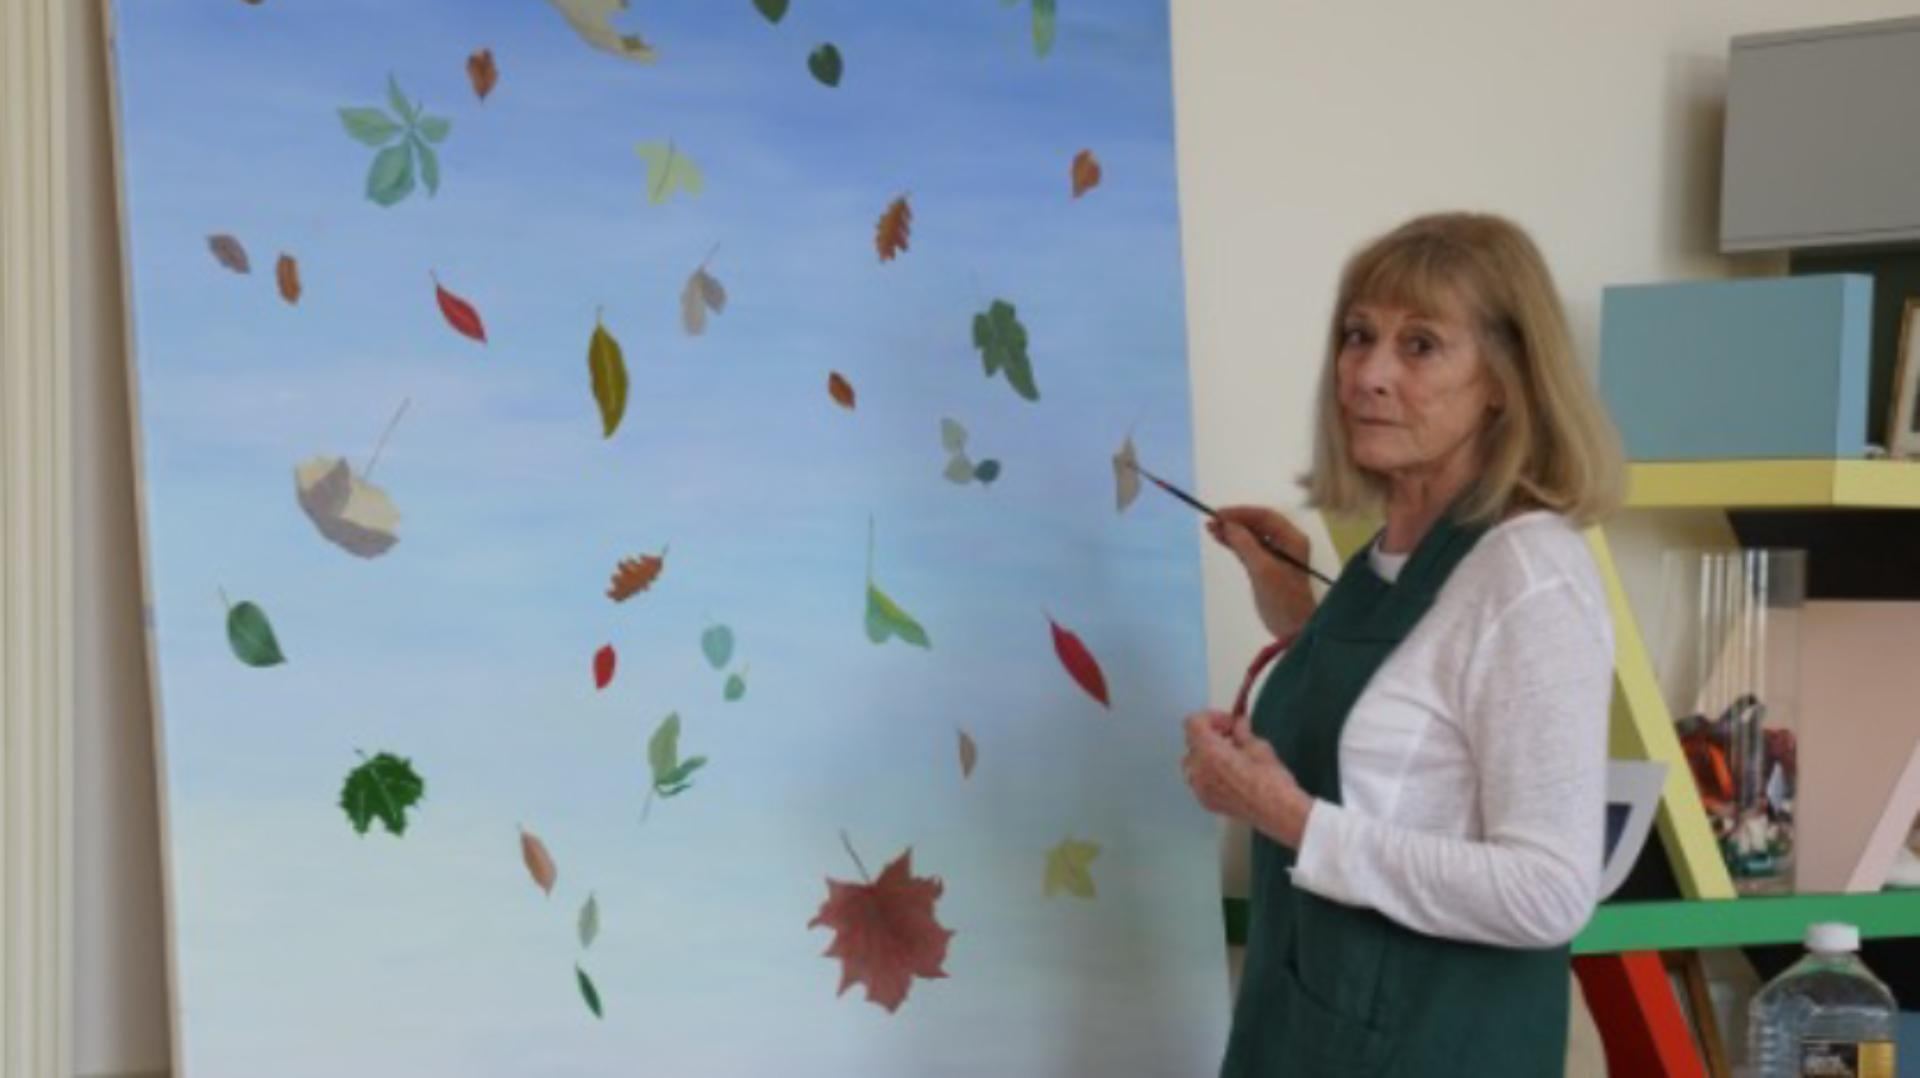 Deirdre Dyson painting falling leaves on a large canvas